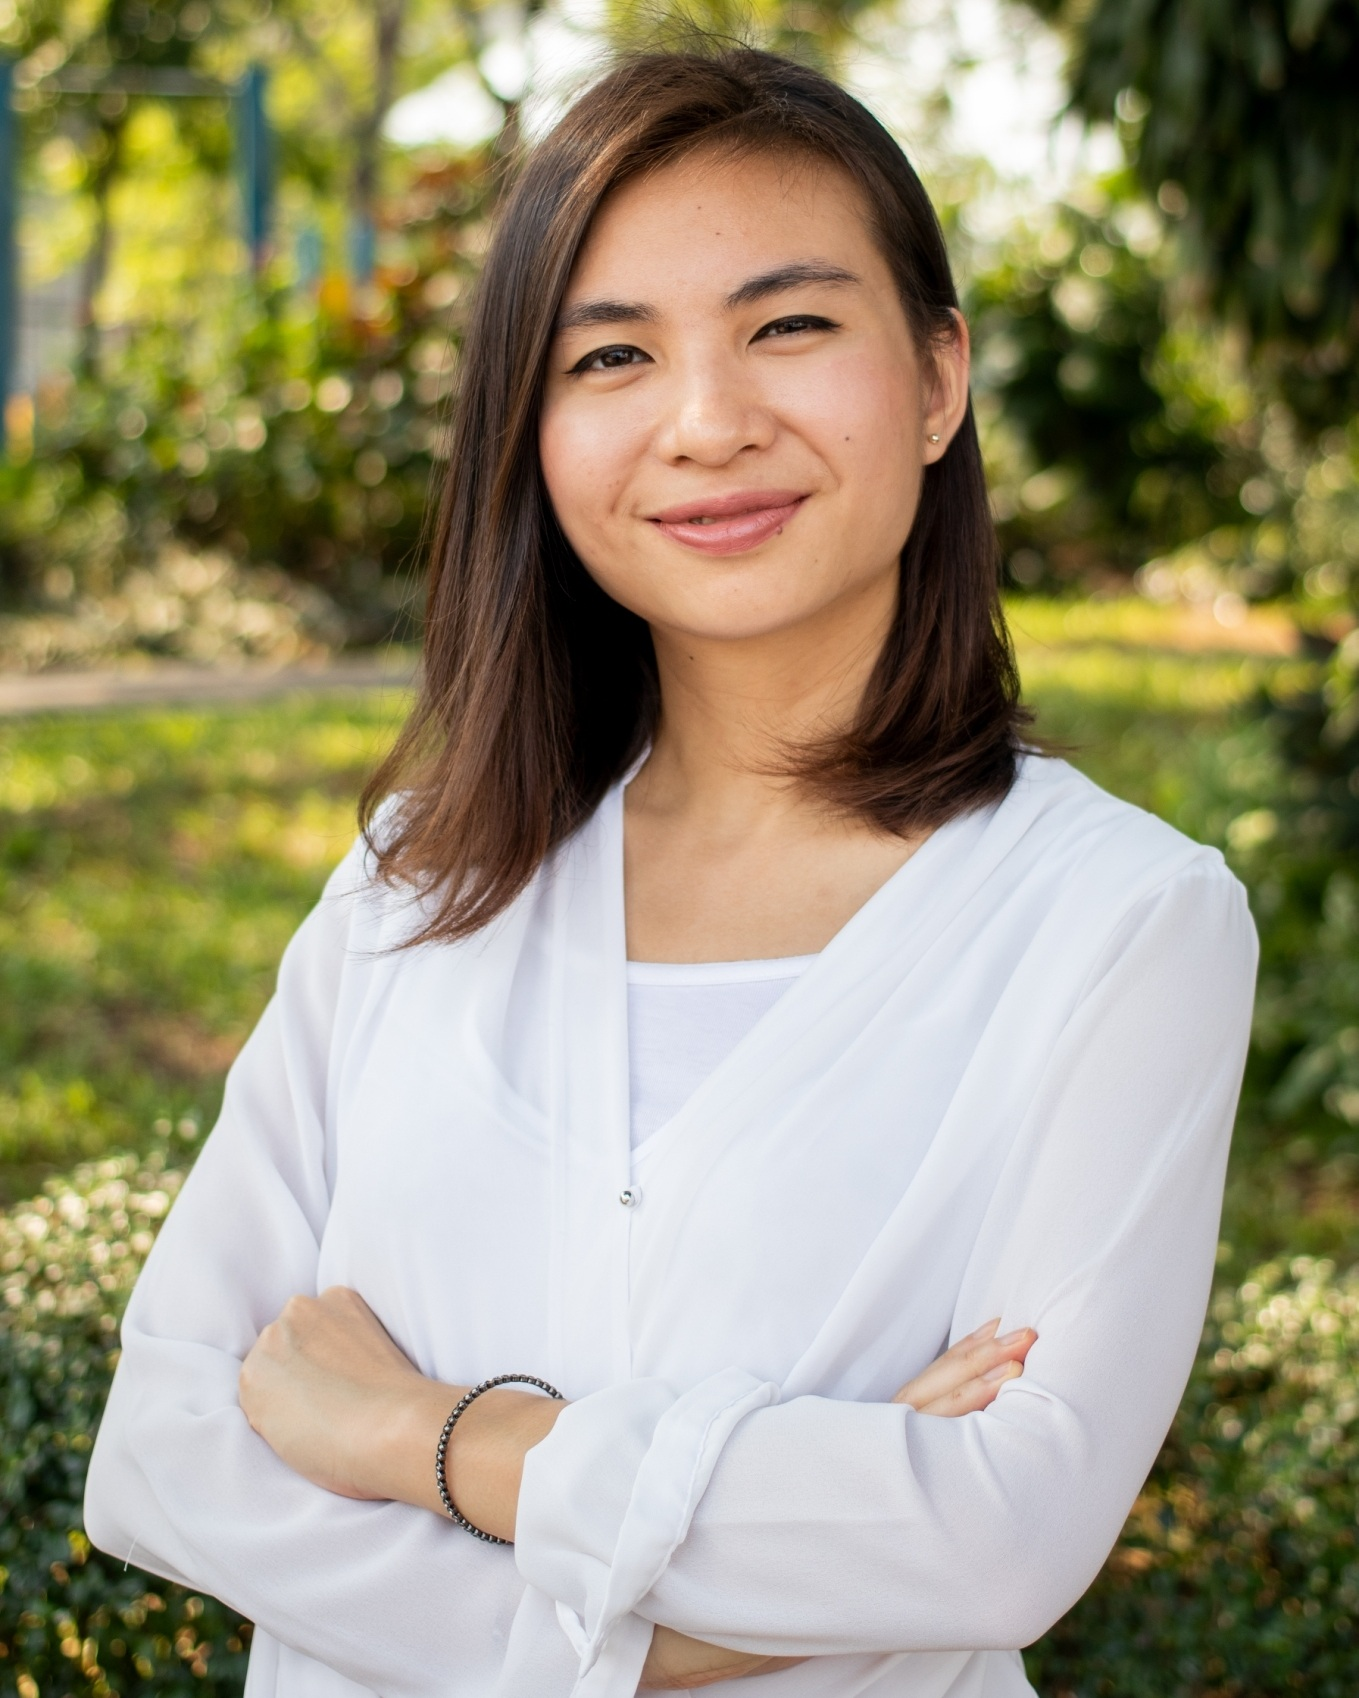 Alisa Chalerychit - Alisa Chalerychit is a professional communicator and a communications coach based in Bangkok, Thailand. She runs public speaking classes for high school students both in Thai and English. To inquire about her upcoming courses, click here